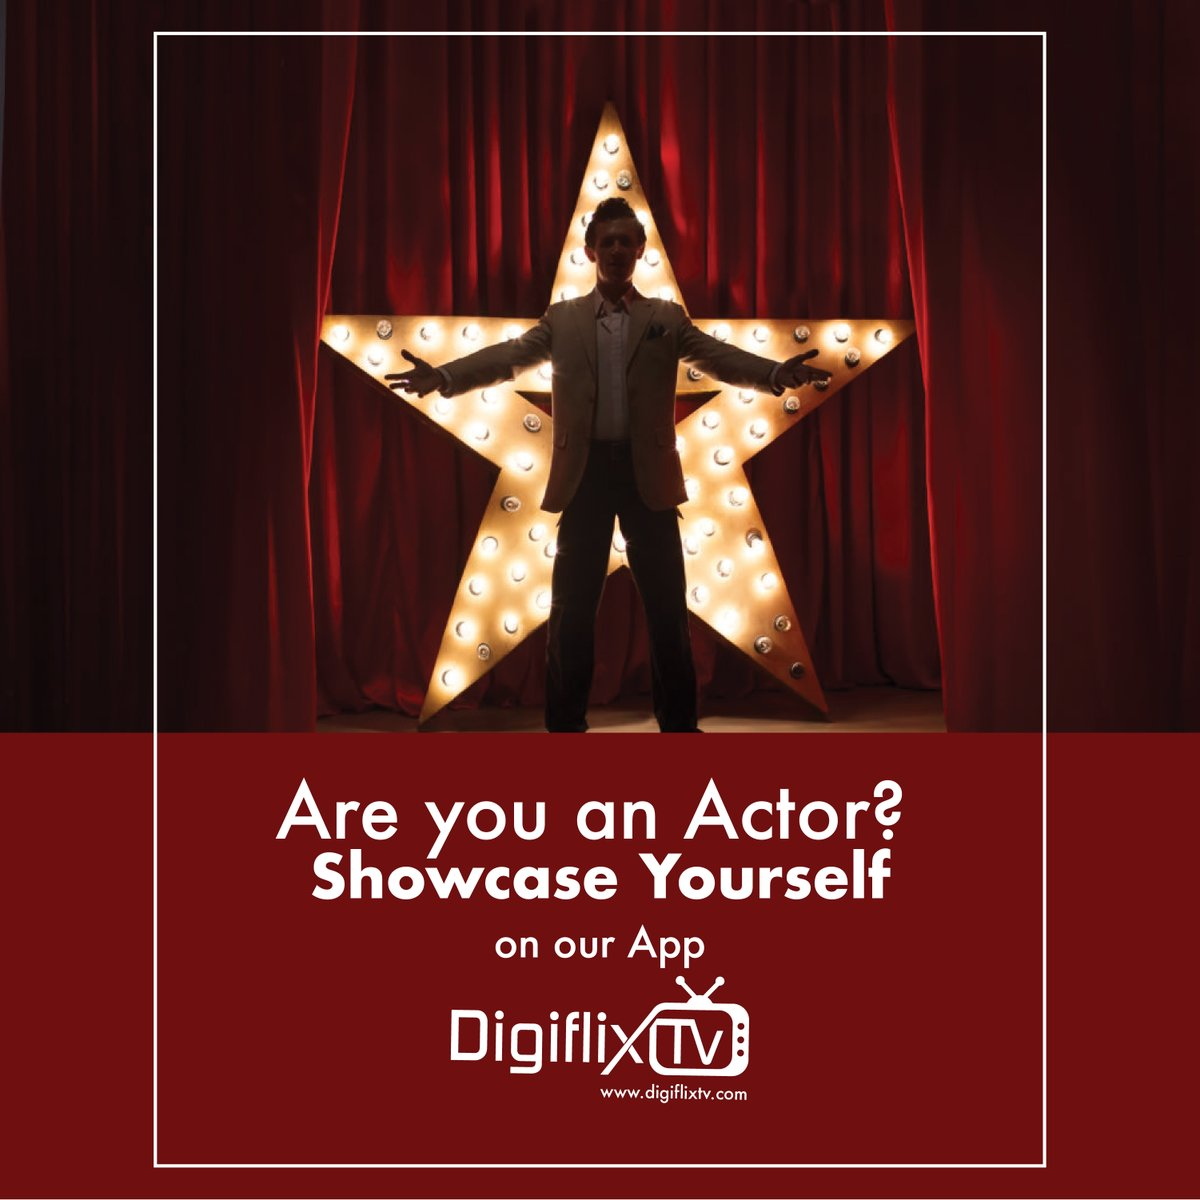 Are you an Actor ? Come join us on #DigiflixTV and get a chance to get casted in our next movie.  #actor #actress #model #film #actorslife #movie #hollywood #bollywood #acting #cinema #instagram #photography #artist #instagood #art #movies #fashion #theatre #actors #drama #tv https://t.co/7uI2ref359